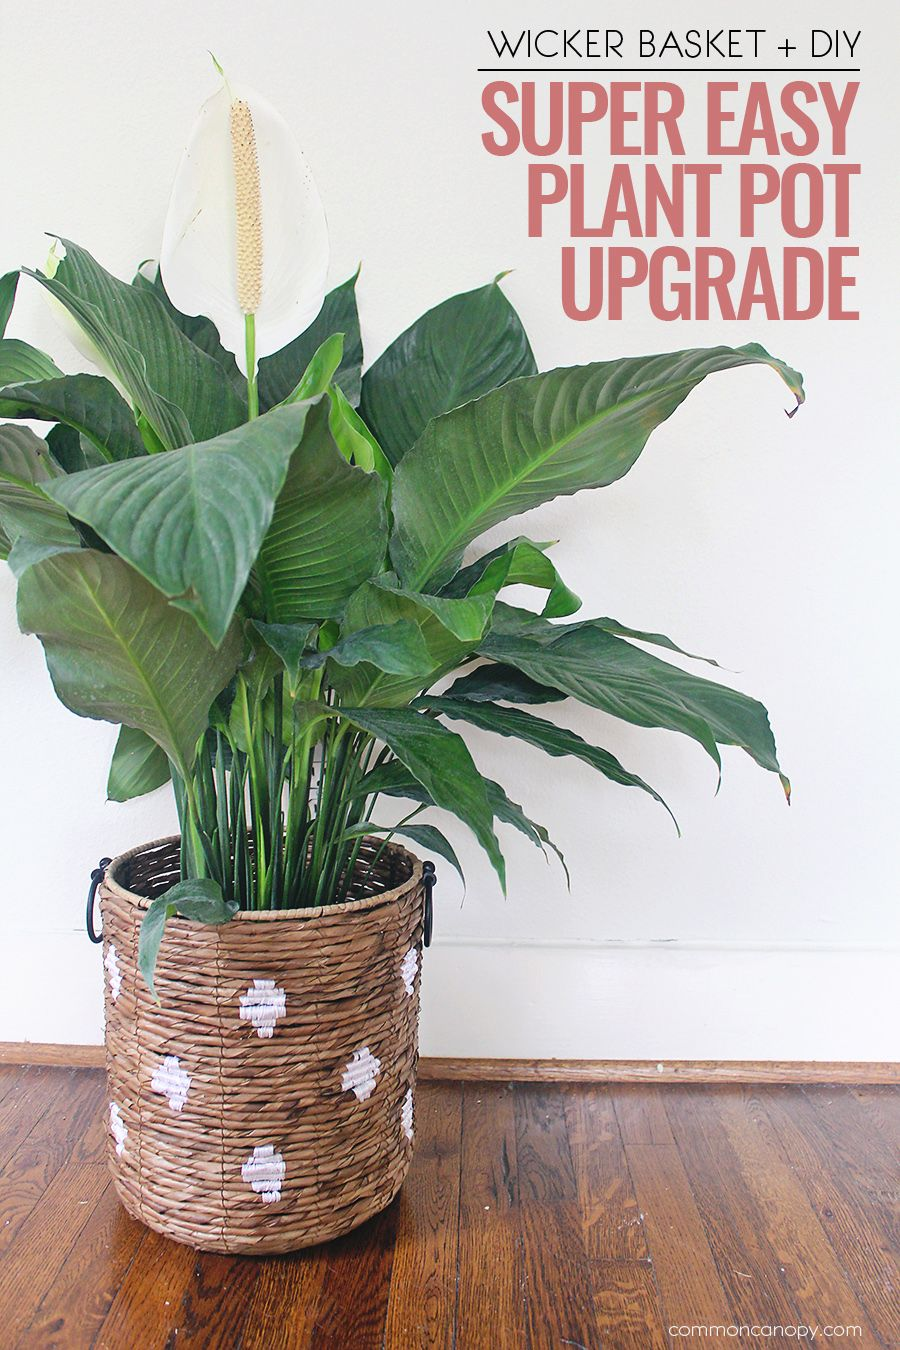 Super Easy Diy Plant Pot Upgrade With Wicker Baskets Common Canopy Plant Pot Diy Wicker Basket Diy Easy Plants